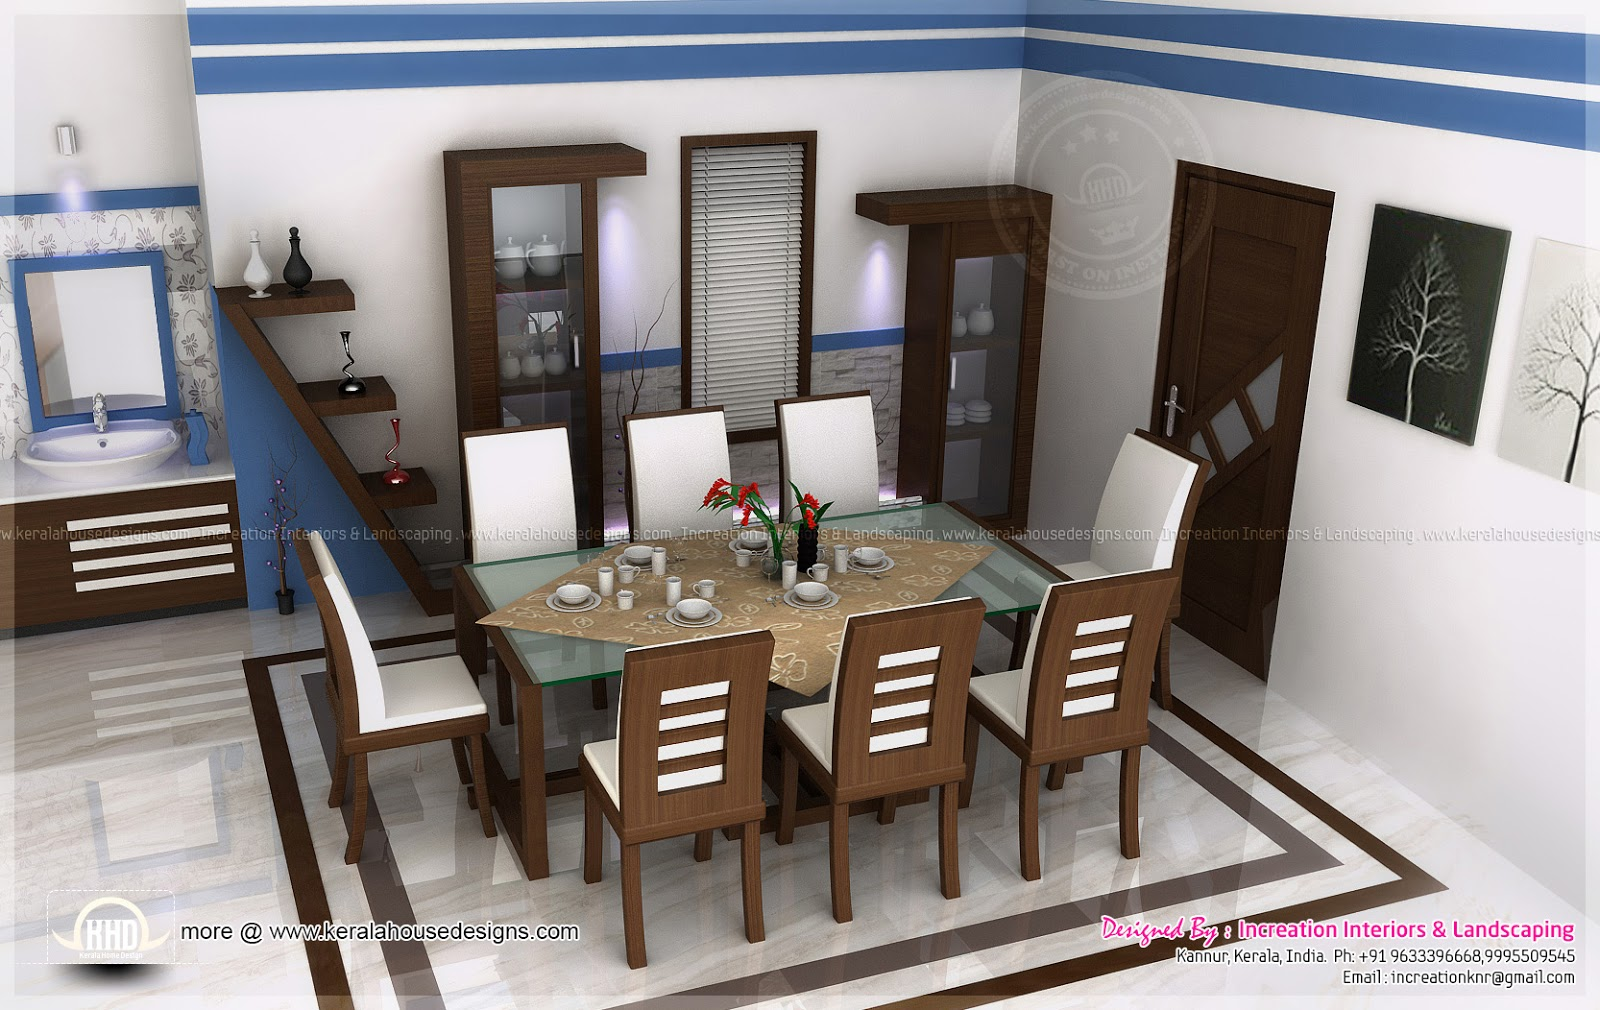 House interior ideas in 3d rendering kerala home design for Small hall interior design photos india